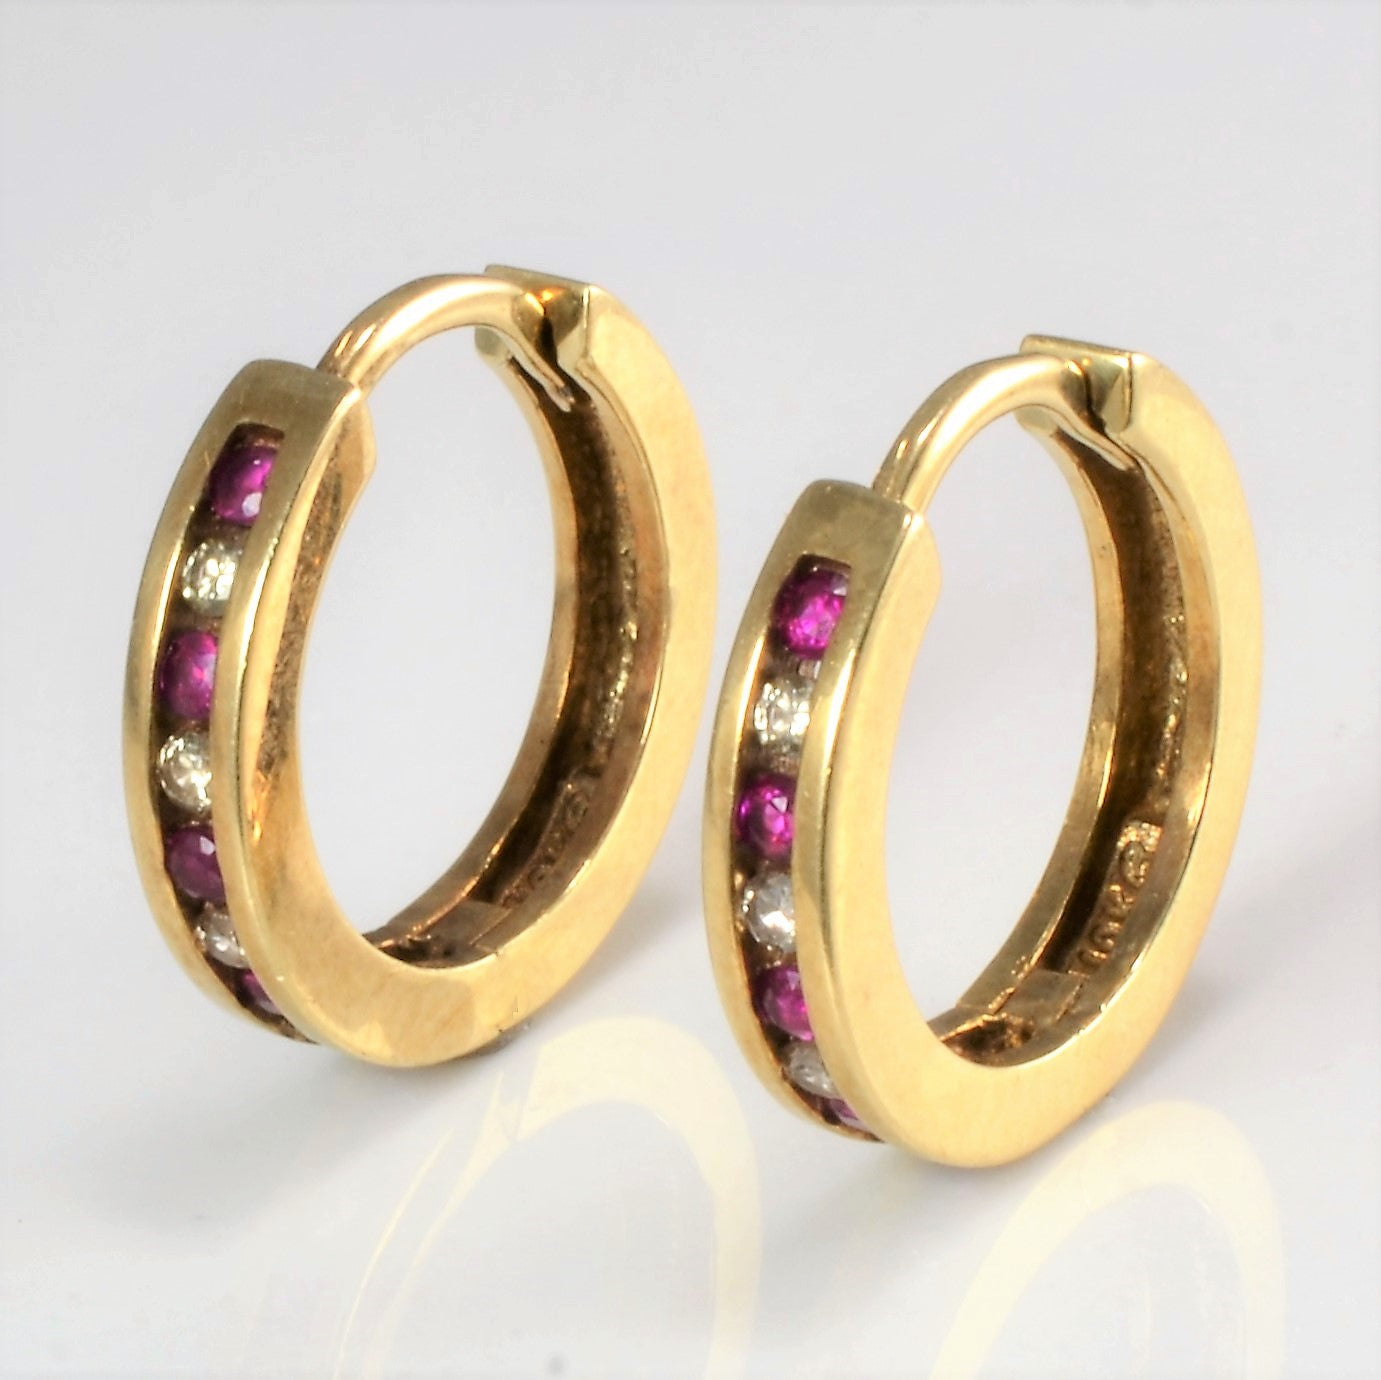 Channel Diamond & Ruby Huggie Earrings | 0.13 ctw |